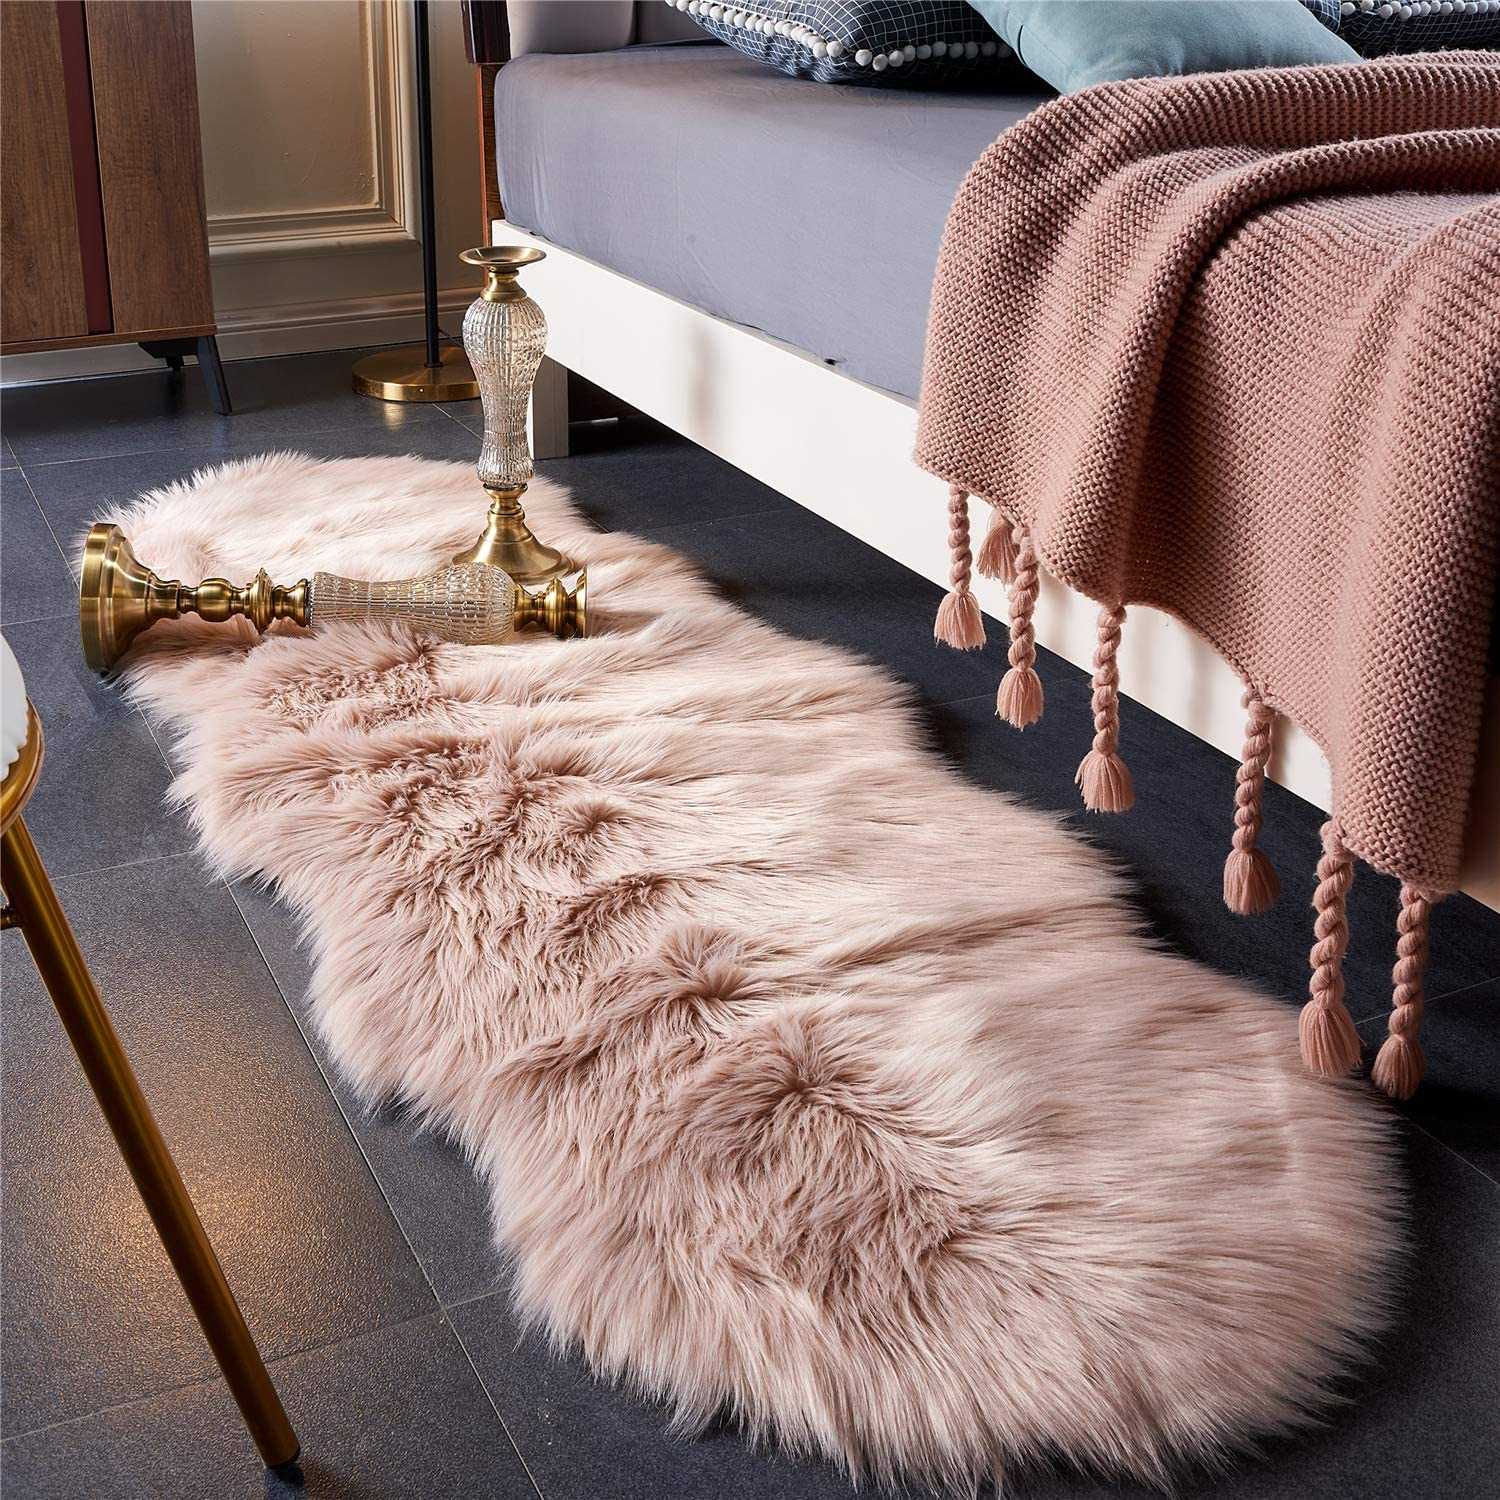 EasyJoy Ultra Soft Fluffy Rugs Faux Fur Rug Chair Cover Seat Pad Fuzzy Area Rug for Bedroom Floor Sofa Living Room (2 x 6 ft Sheepskin, Pink)